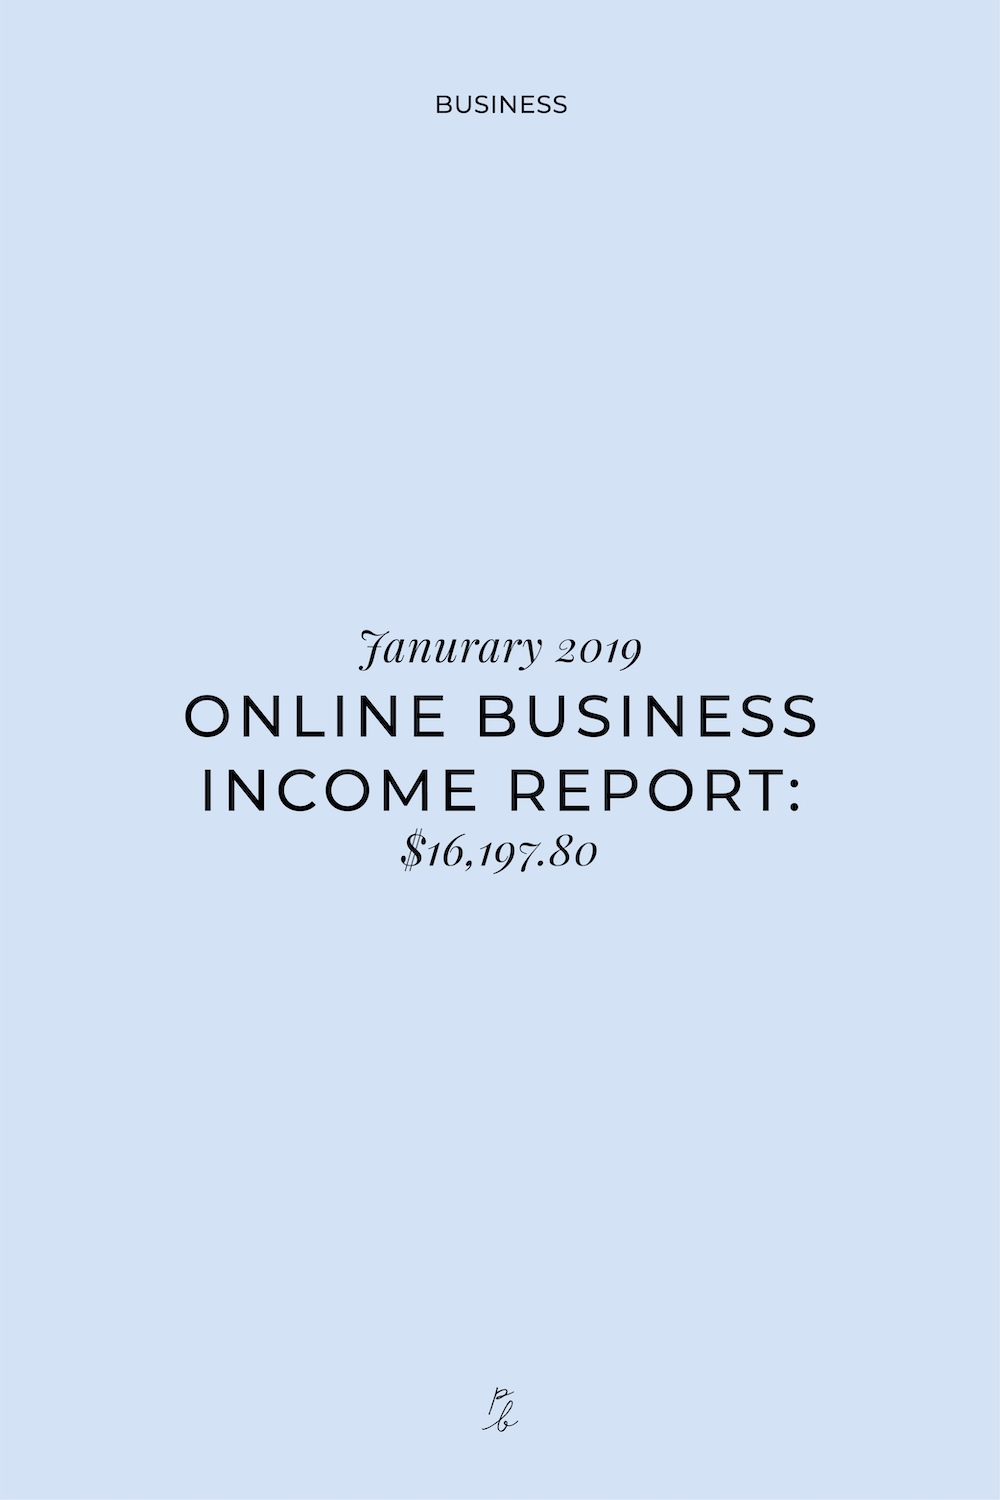 2-January 2019 Onlines business income report.jpg